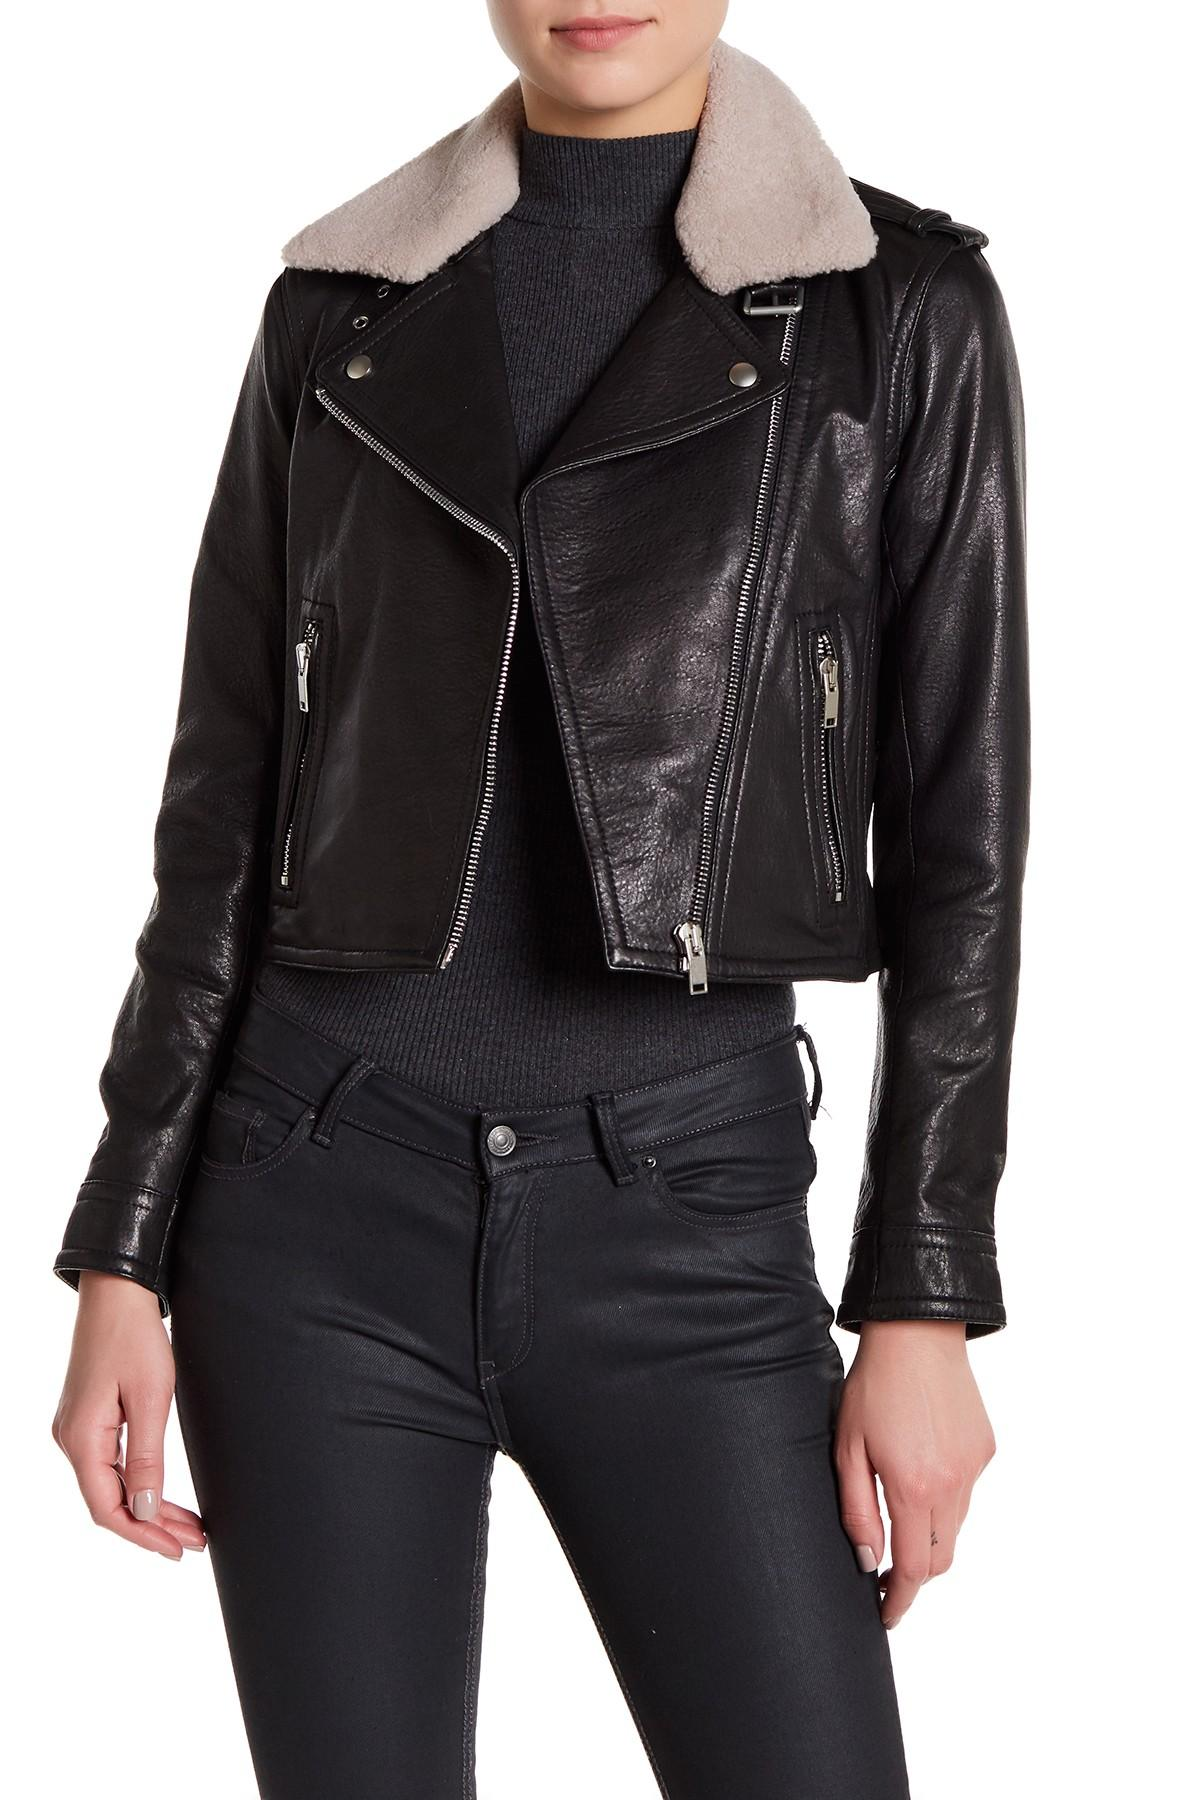 Lyst - Doma Leather Grain Genuine Dyed Shearling Crop ...